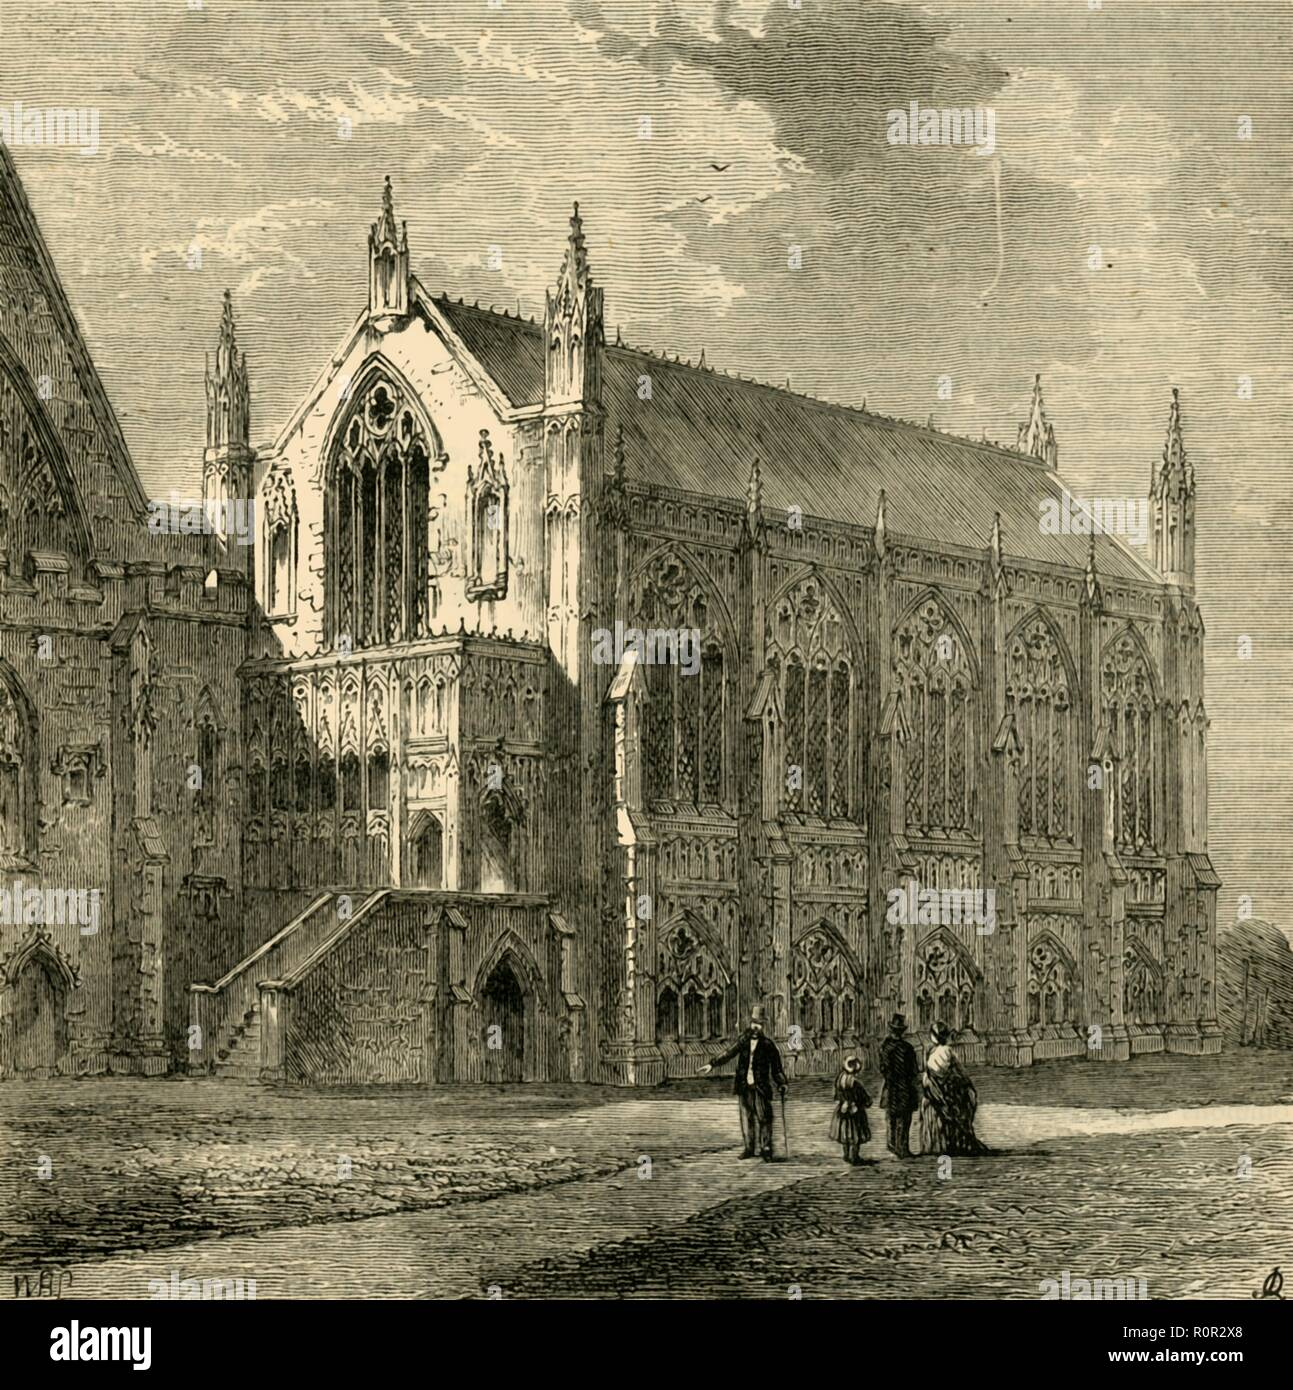 'St. Stephen's Chapel, 1830', (1881). St Stephen's Chapel, in the old Palace of Westminster in London, served as the chamber of the House of Commons of England and of Great Britain from 1547 to 1834. It was largely destroyed in the fire of 1834. From Old and New London: A Narrative of Its History, Its People, and Its Places. Westminster and the Western Suburbs, by Edward Walford, Vol. III. [Cassell, Petter, Galpin & Co., London, Paris & New York, 1881] - Stock Image